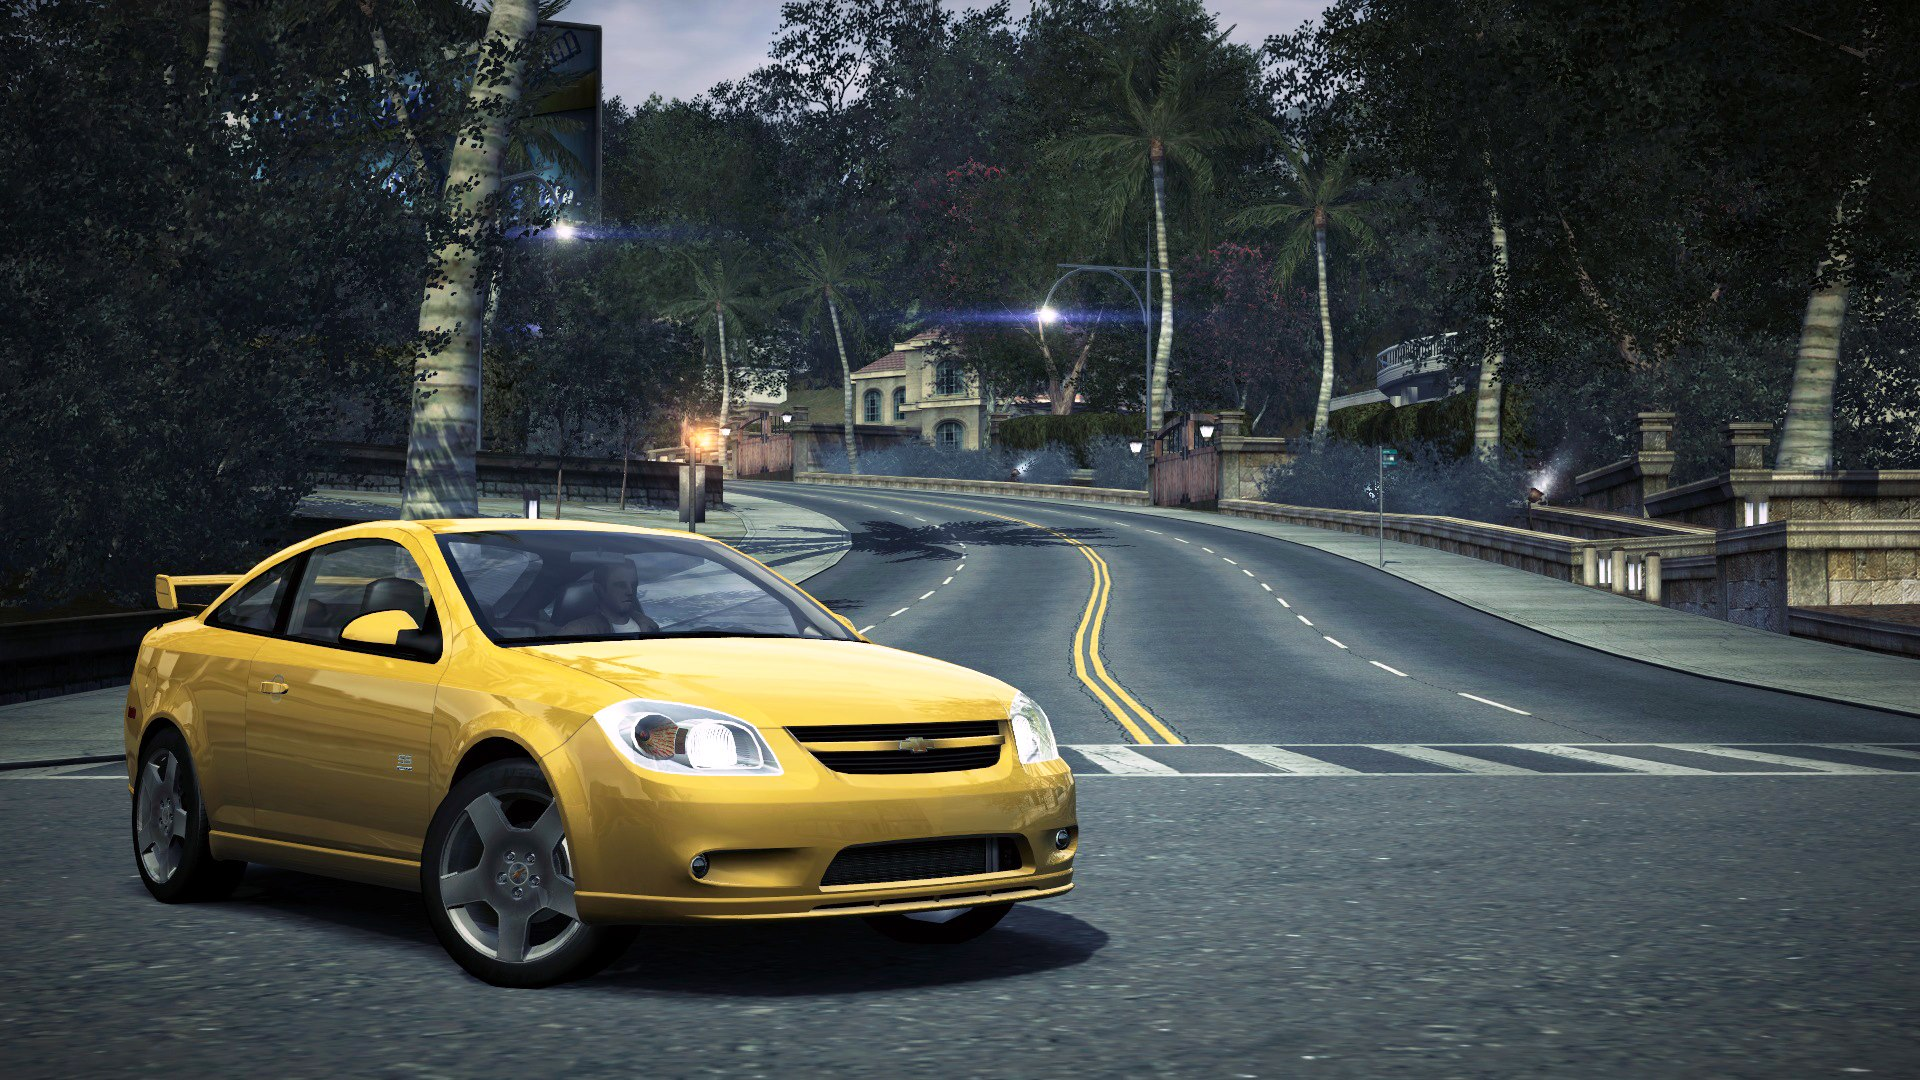 2010 Cobalt Ss >> Chevrolet Cobalt Ss Nfs World Wiki Fandom Powered By Wikia